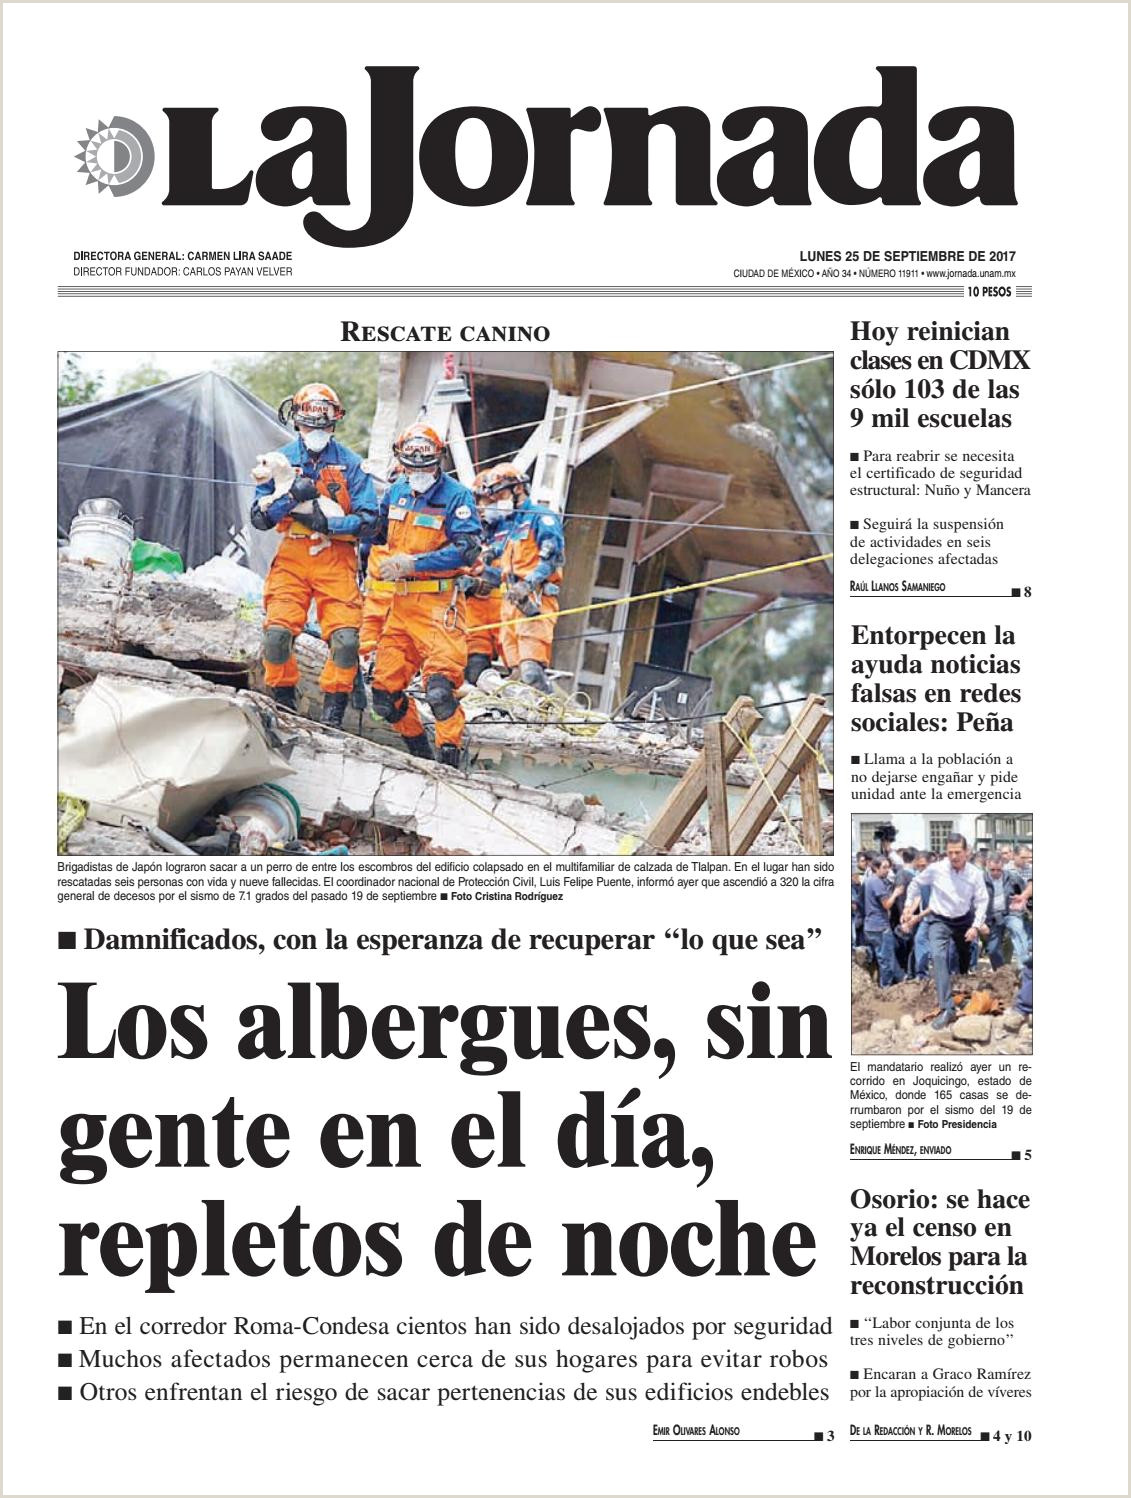 La Jornada 09 25 2017 by La Jornada issuu